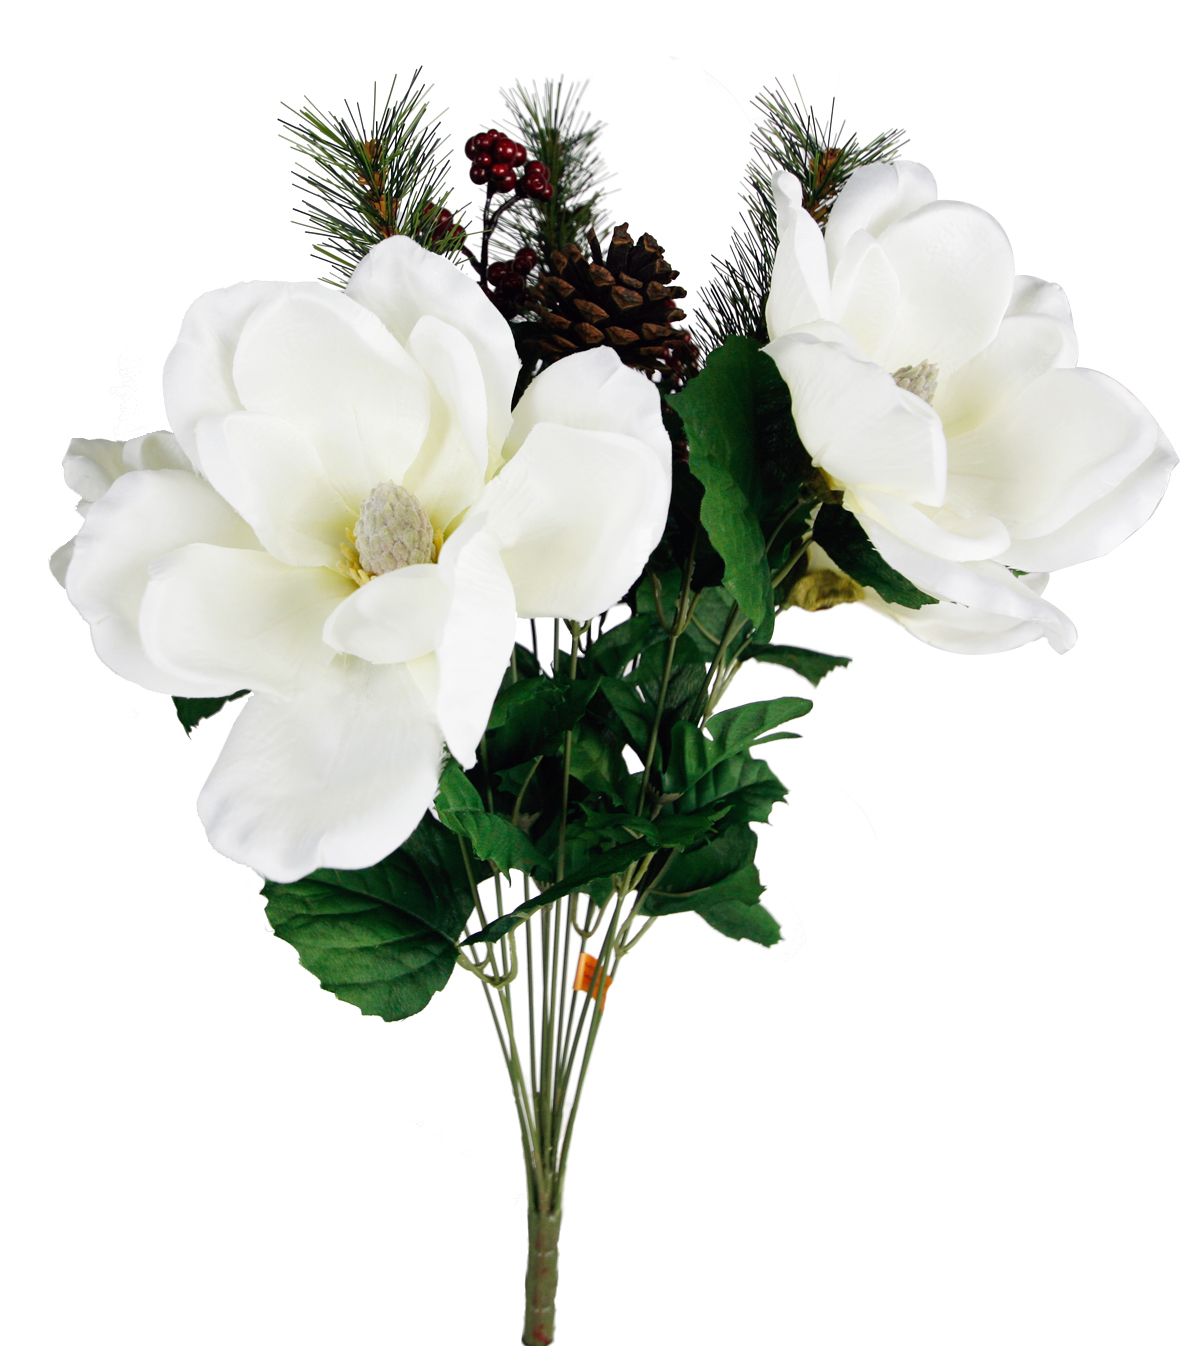 Blooming Holiday Christmas Ivory Magnolia, Pine & Berry Bush